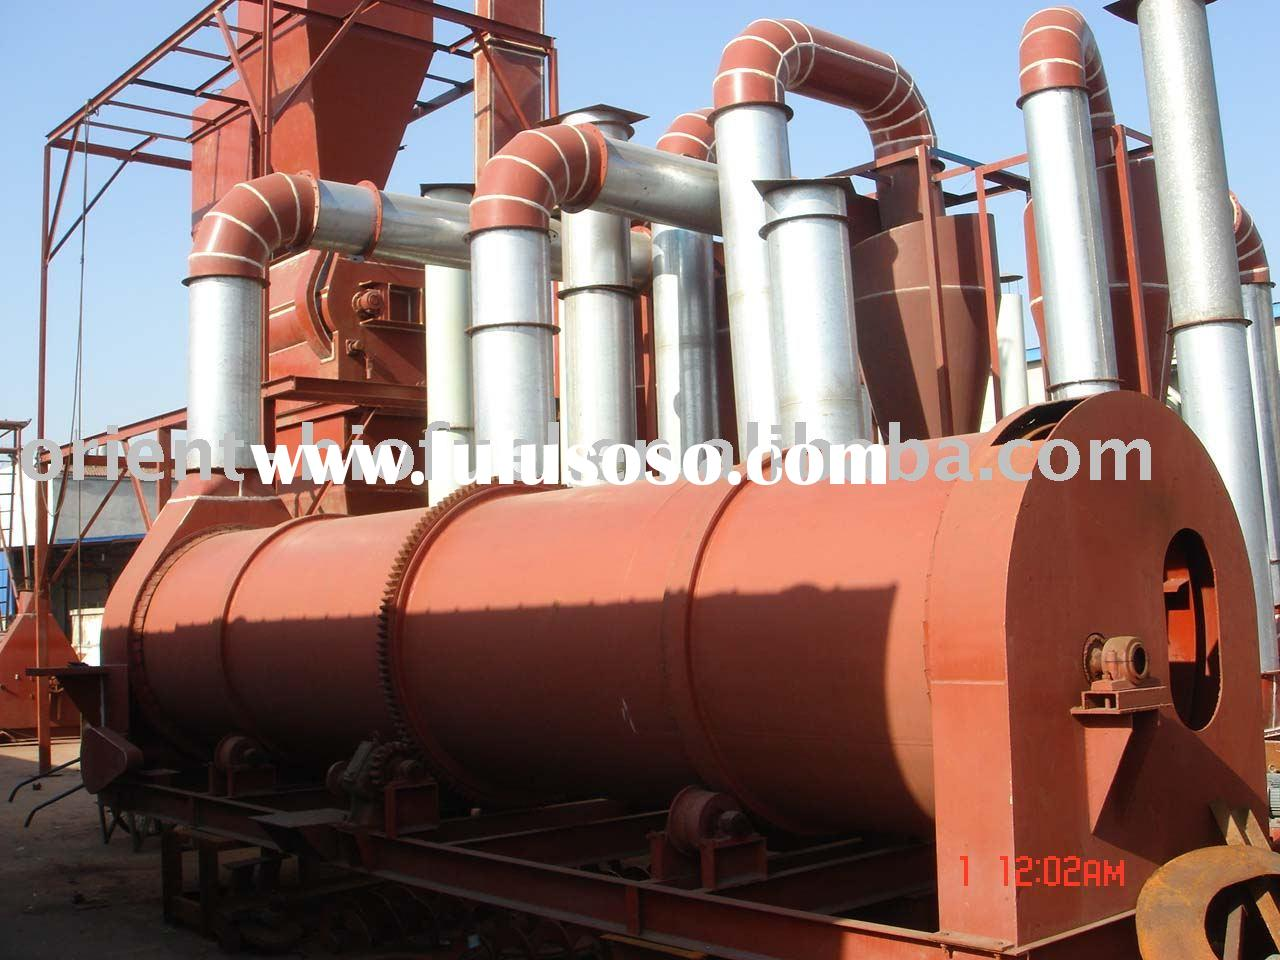 WSG-Series Rotary Drum Dryer For Drying And Cooling